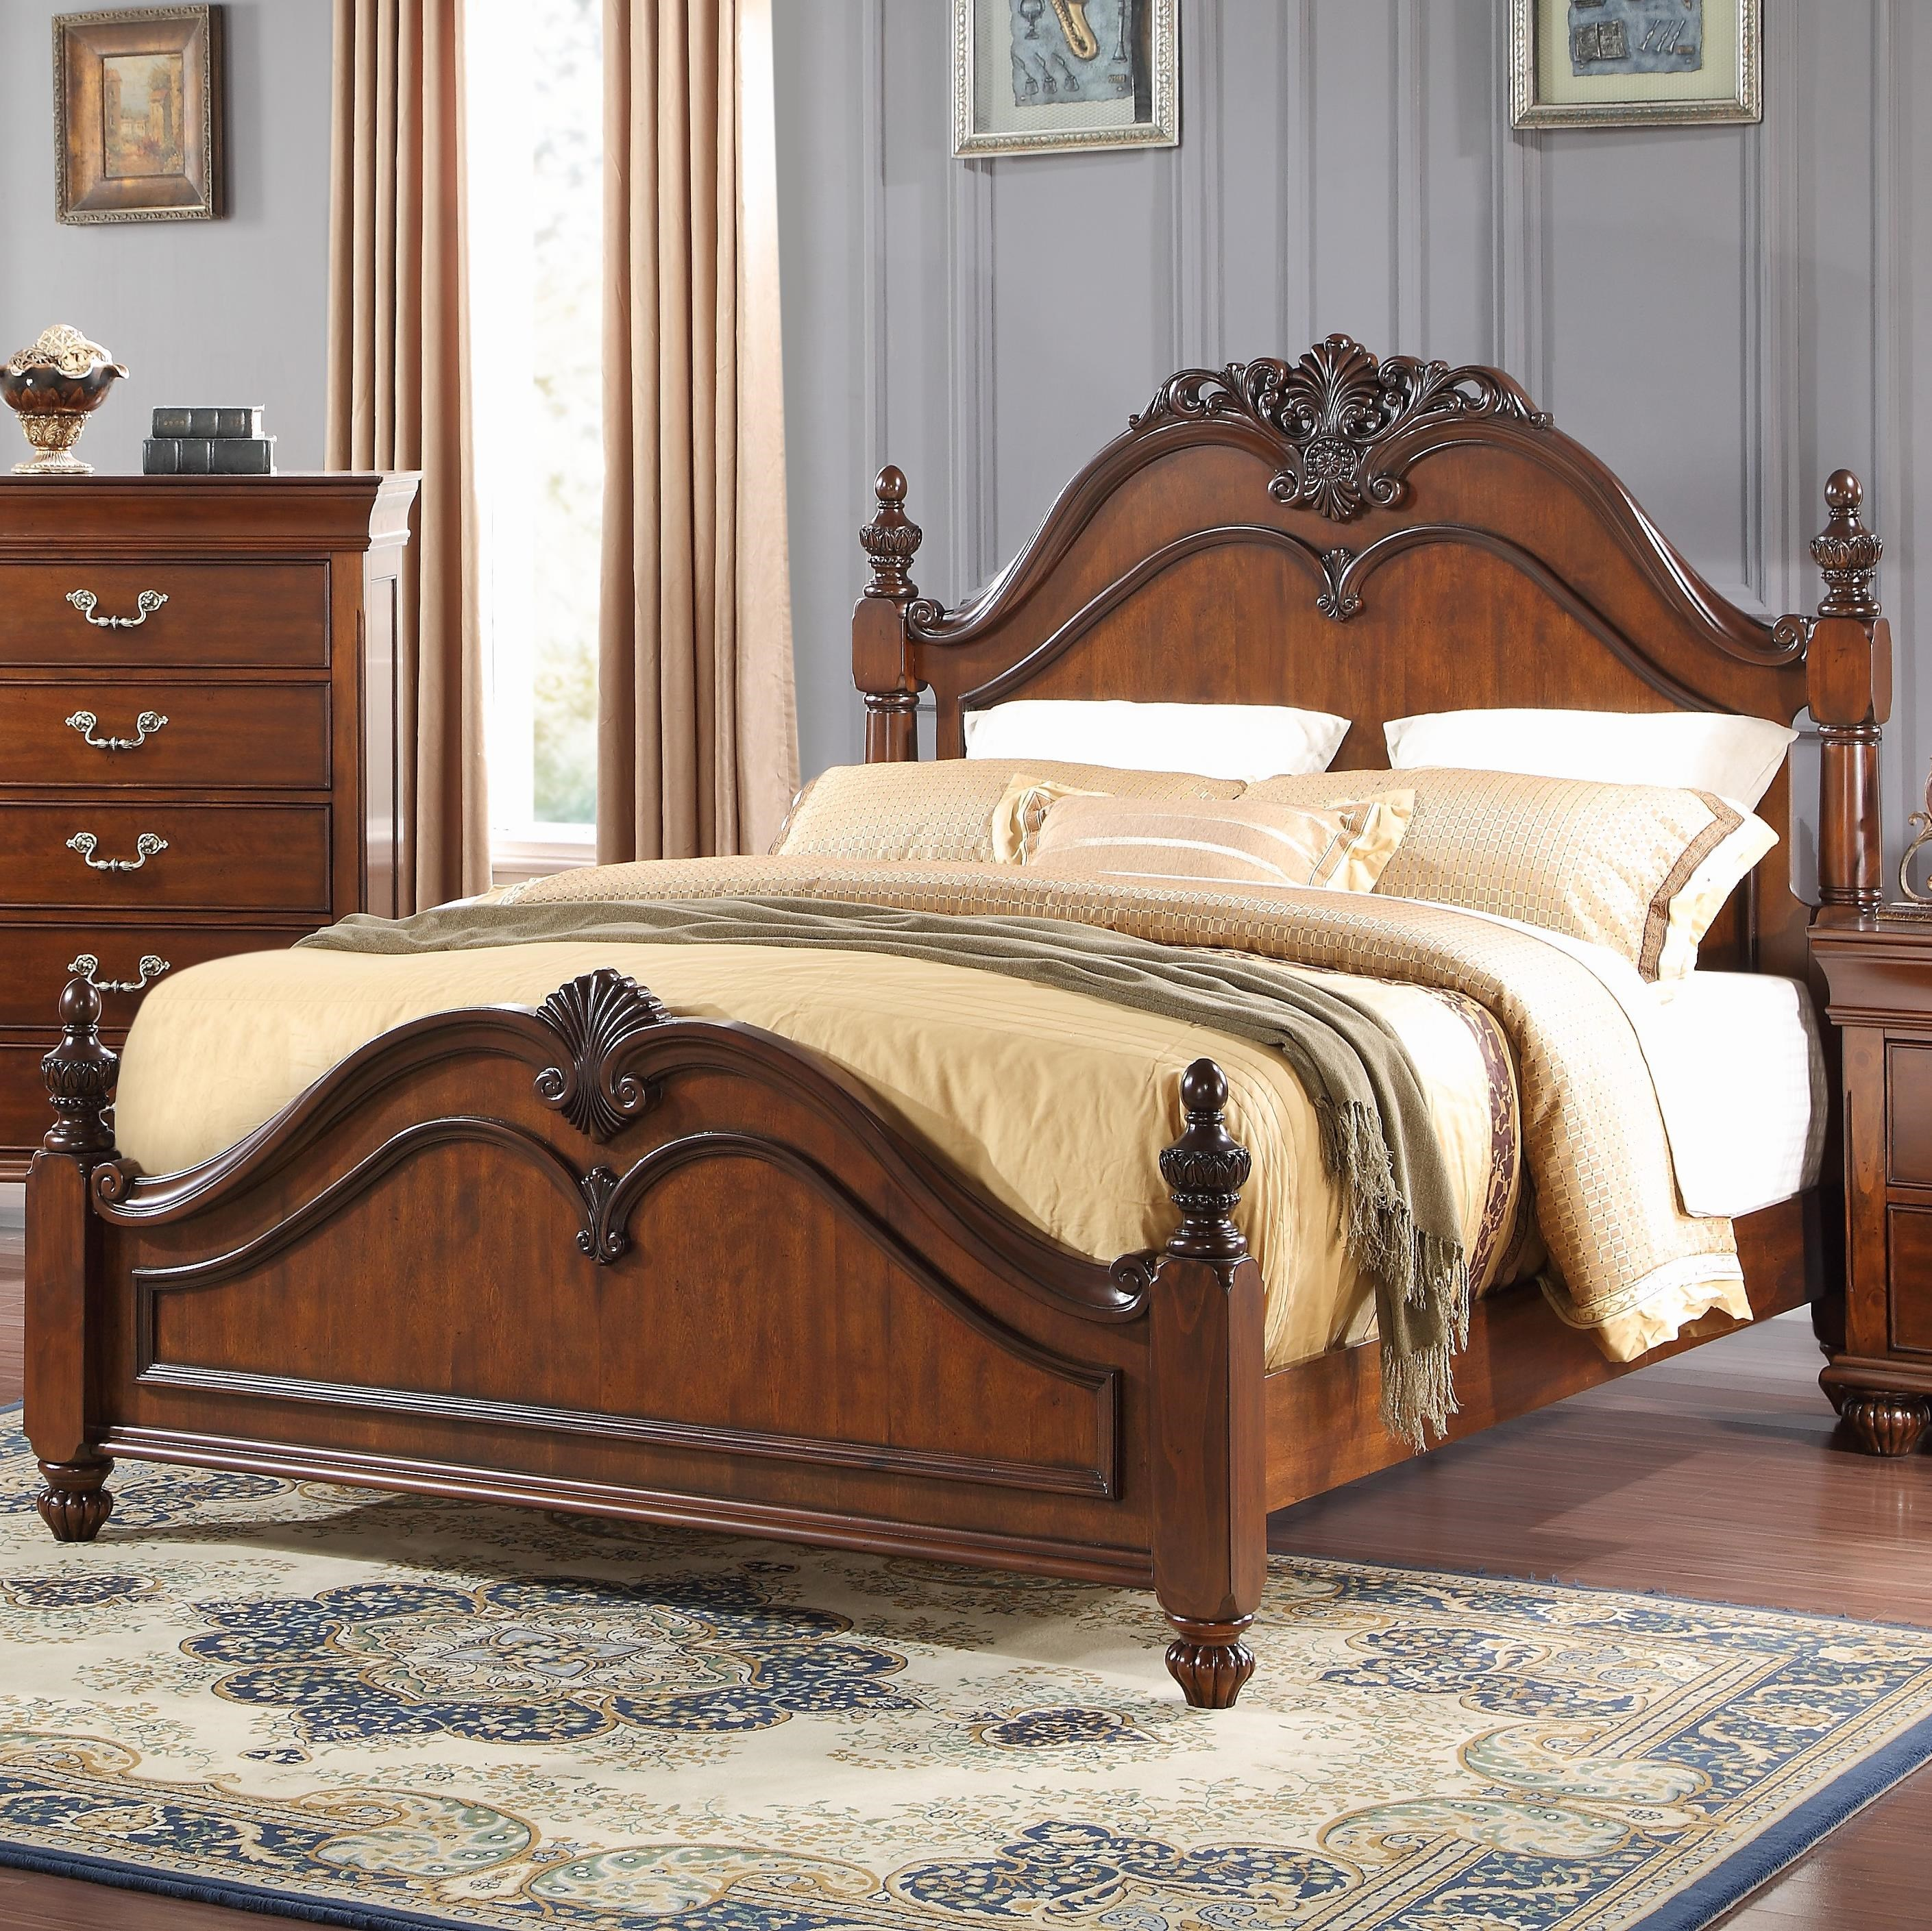 Delicieux New Classic Burbank King Poster Bed With Carved Details